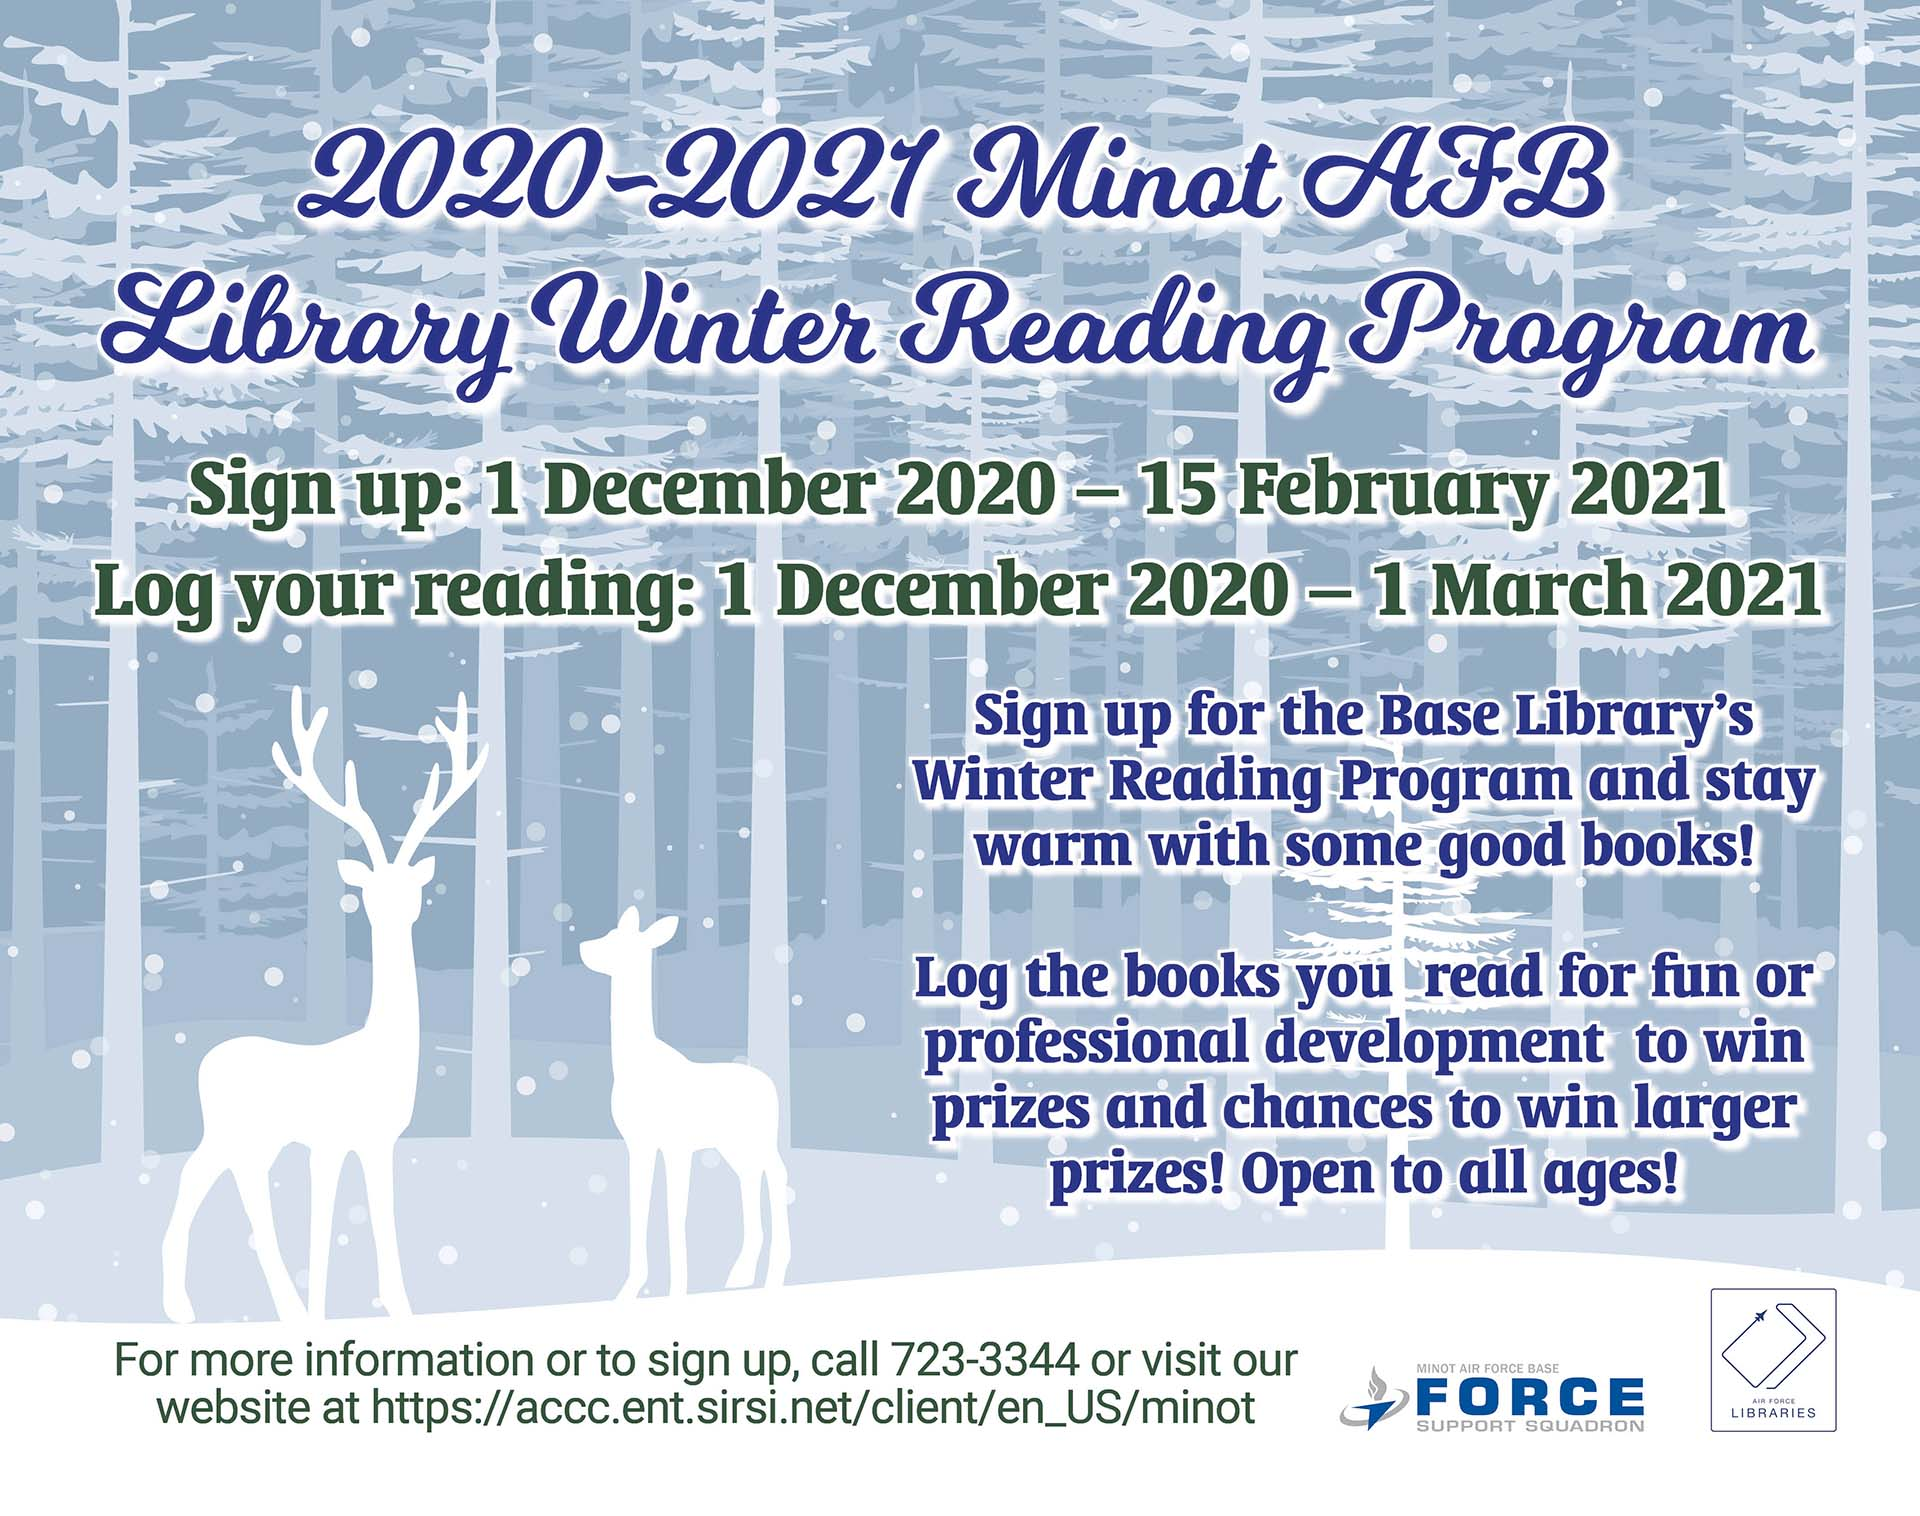 Minot Afb Library Winter Reading Program Last Day To Sign Up 5th Force Support Squadron